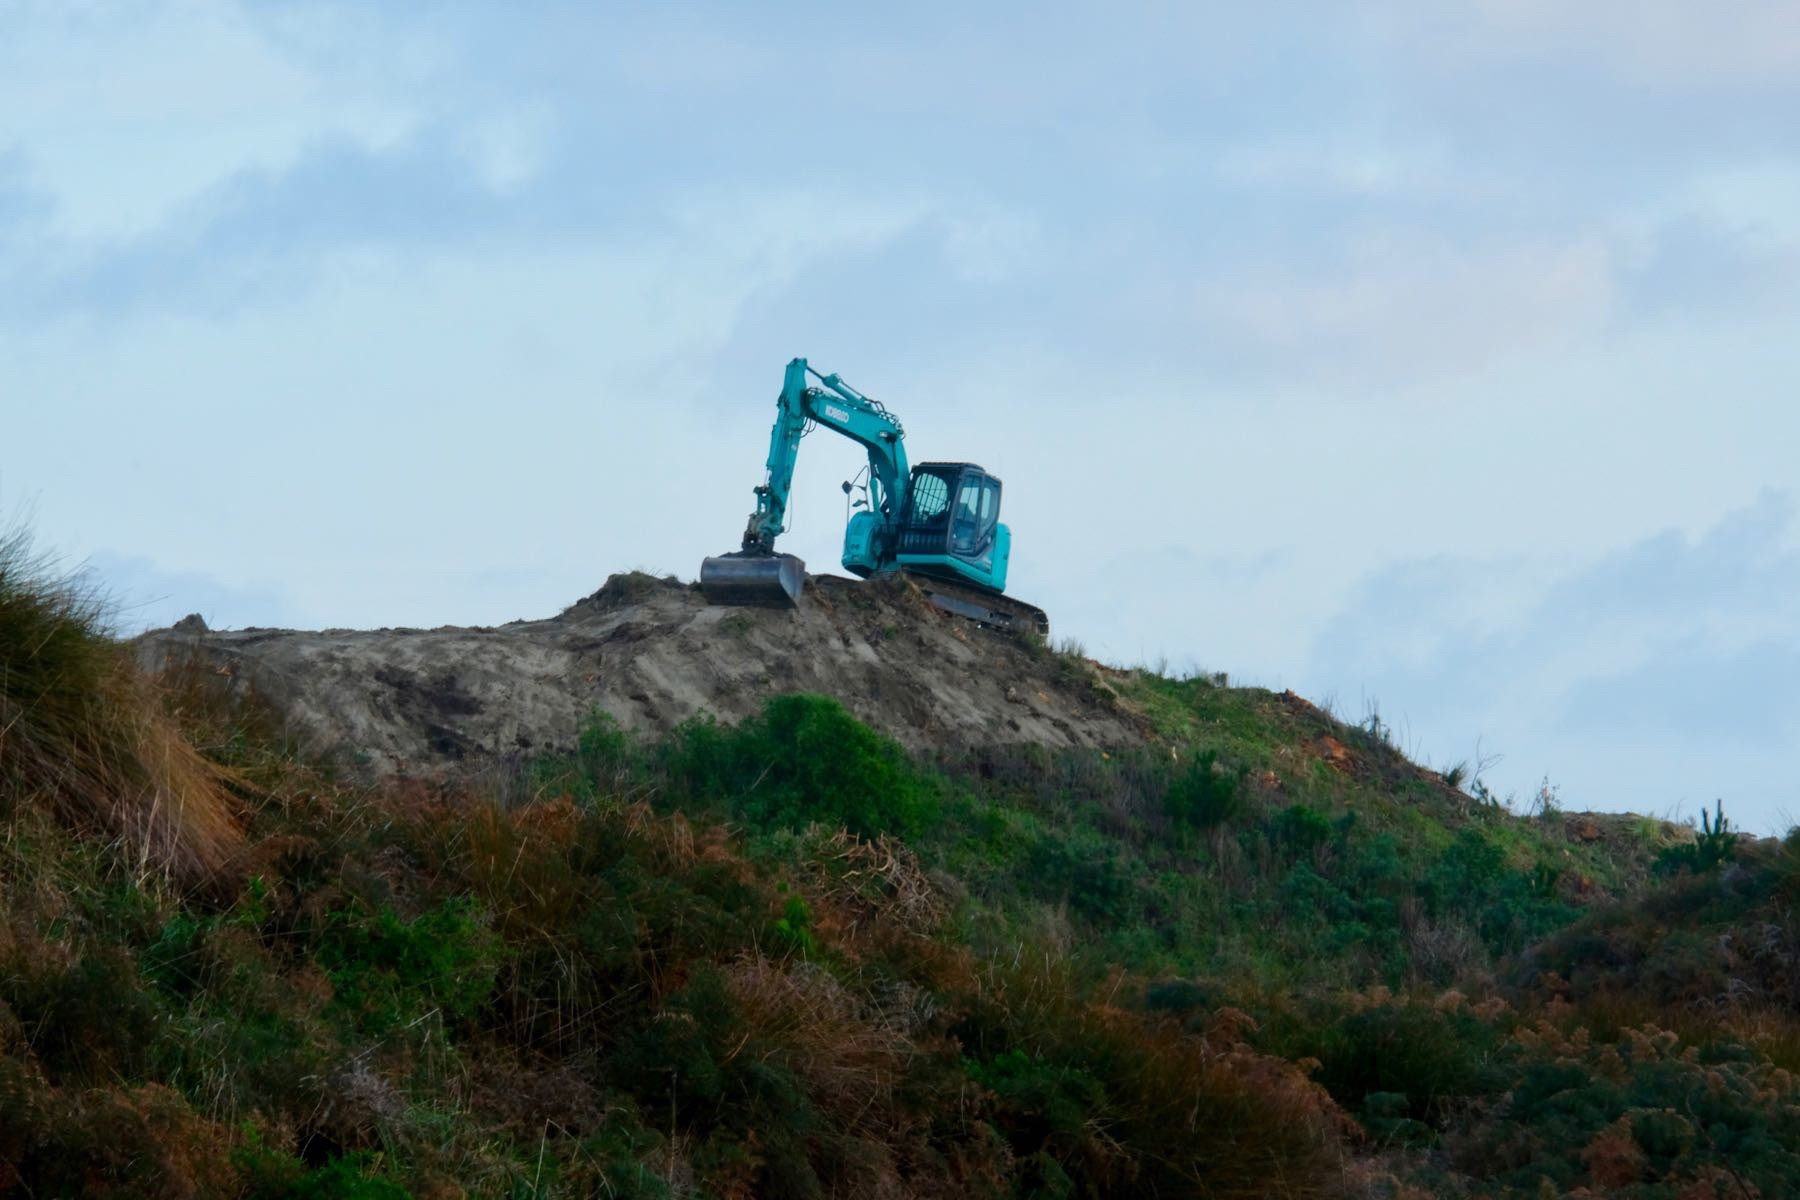 Digger removing the top of a hill it is sitting on.